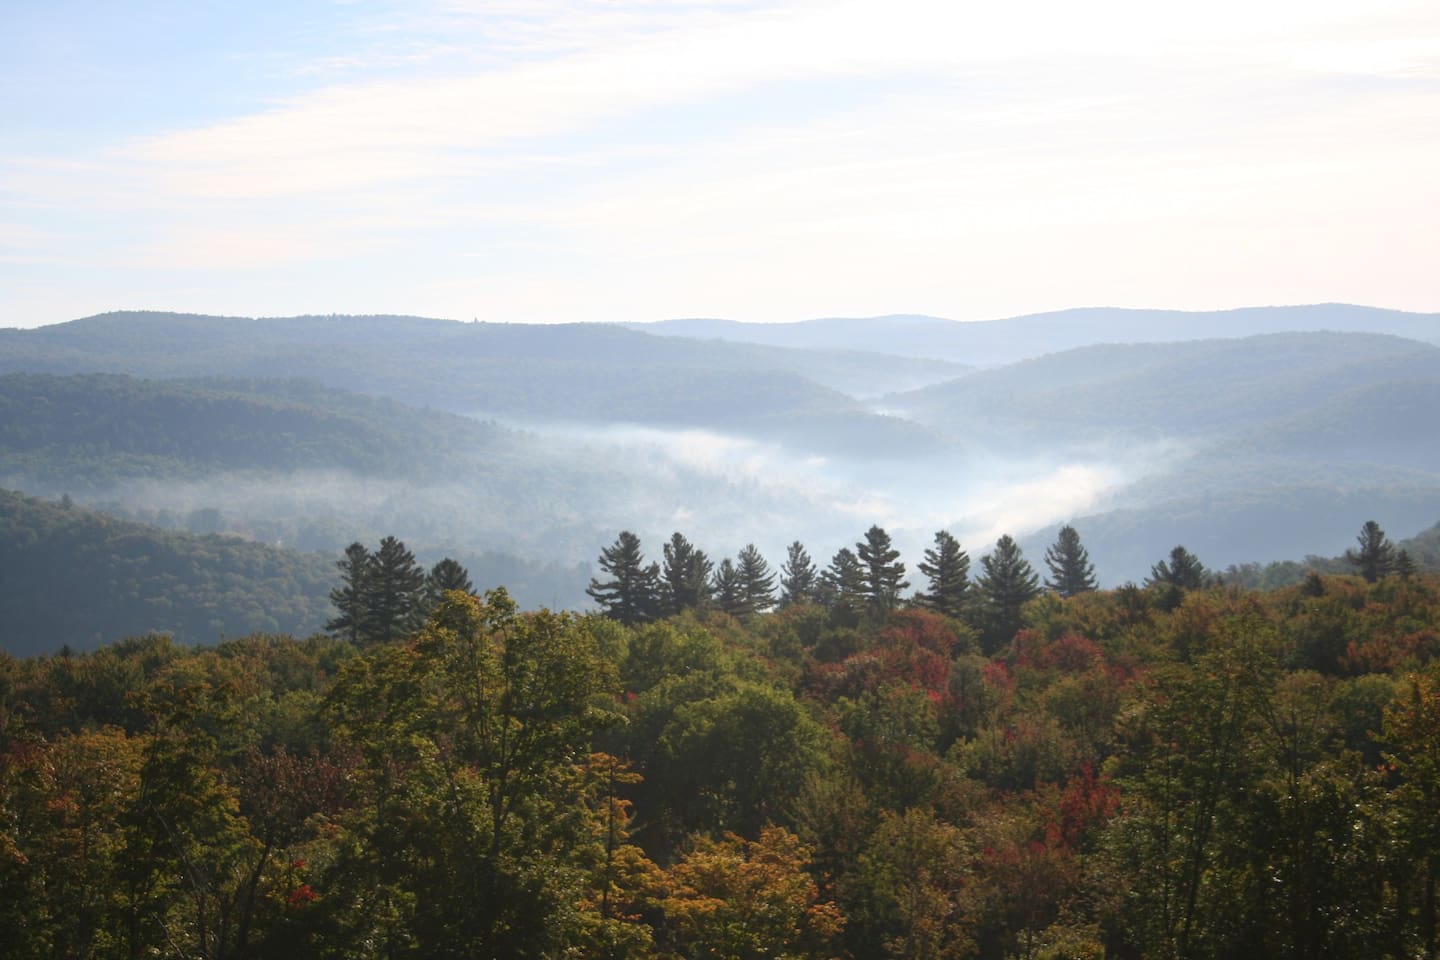 View in early fall